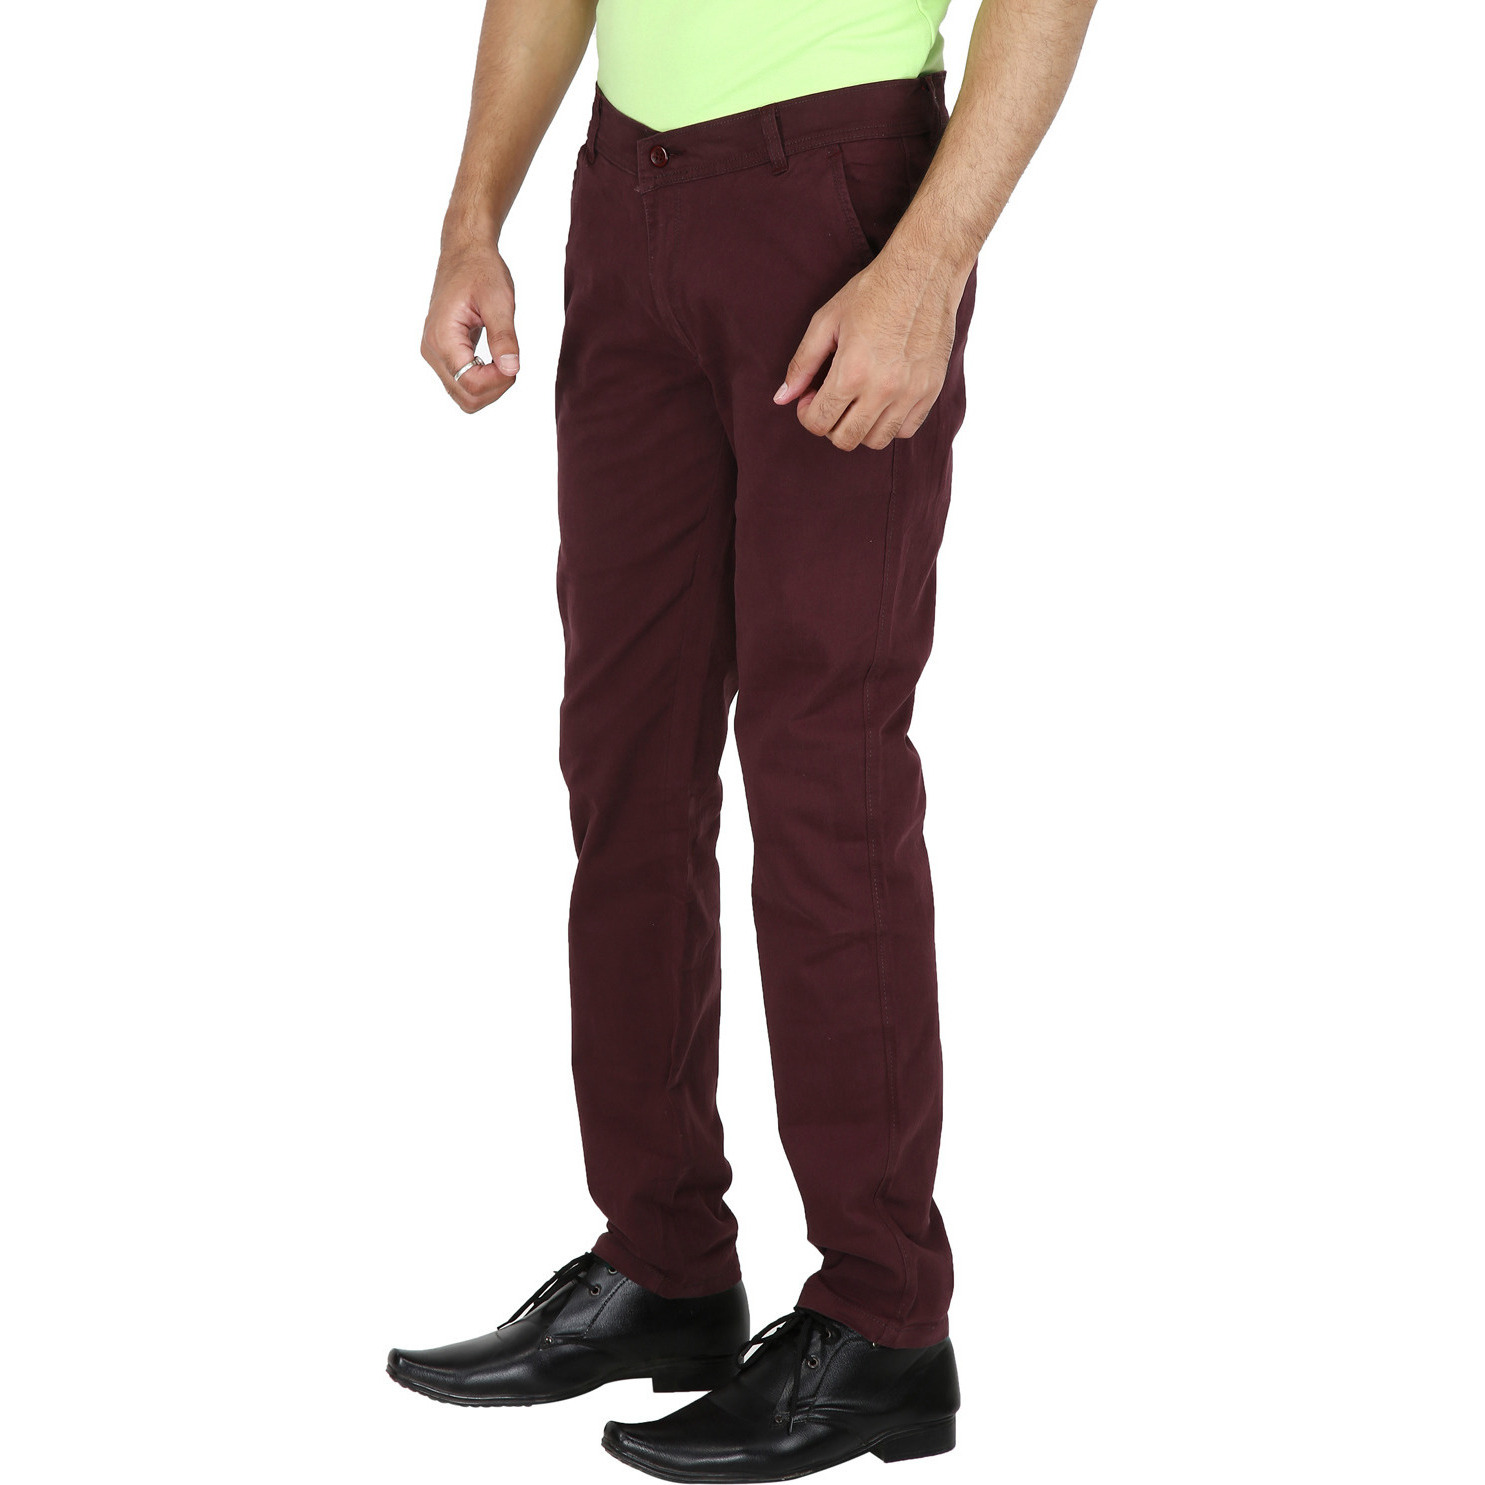 Stallion Maroon Casual Men's Chinos Trouser by Be You (Size:36)